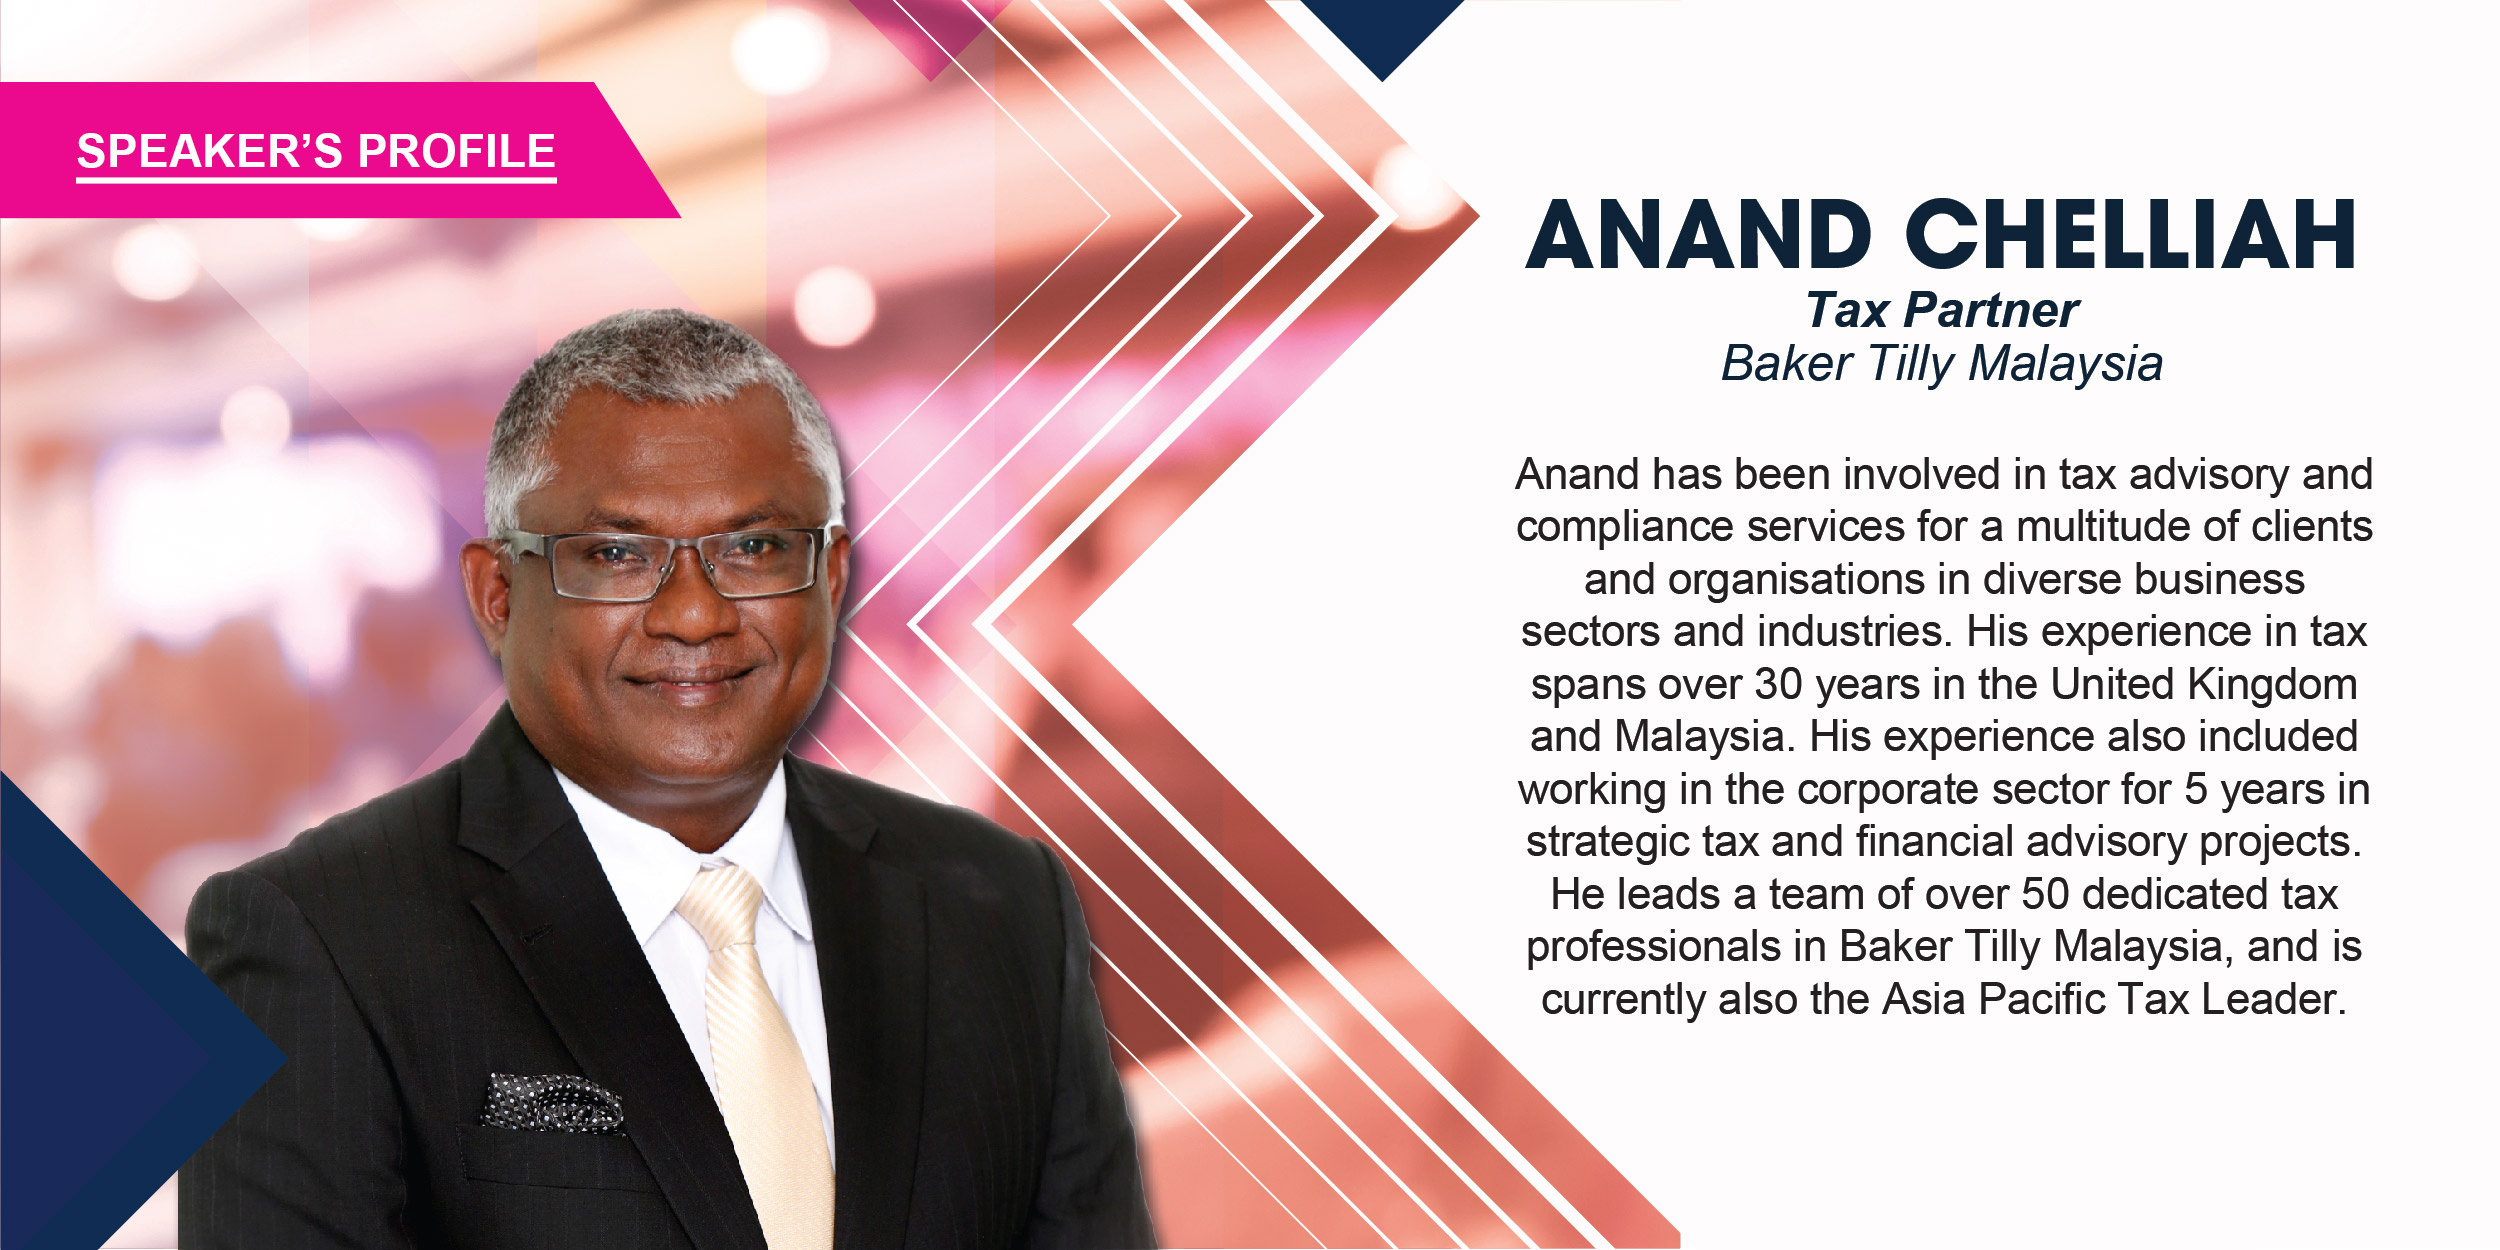 Anand has been involved in tax advisory and compliance services for a multitude of clients and organisations in diverse business sectors and industries. His experience in tax spans over 30 years in the United Kingdom and Malaysia. His experience also included working in the corporate sector for 5 years in strategic tax and financial advisory projects. He leads a team of over 50 dedicated tax professionals in Baker Tilly Malaysia, and is currently also the Asia Pacific Tax Leader.